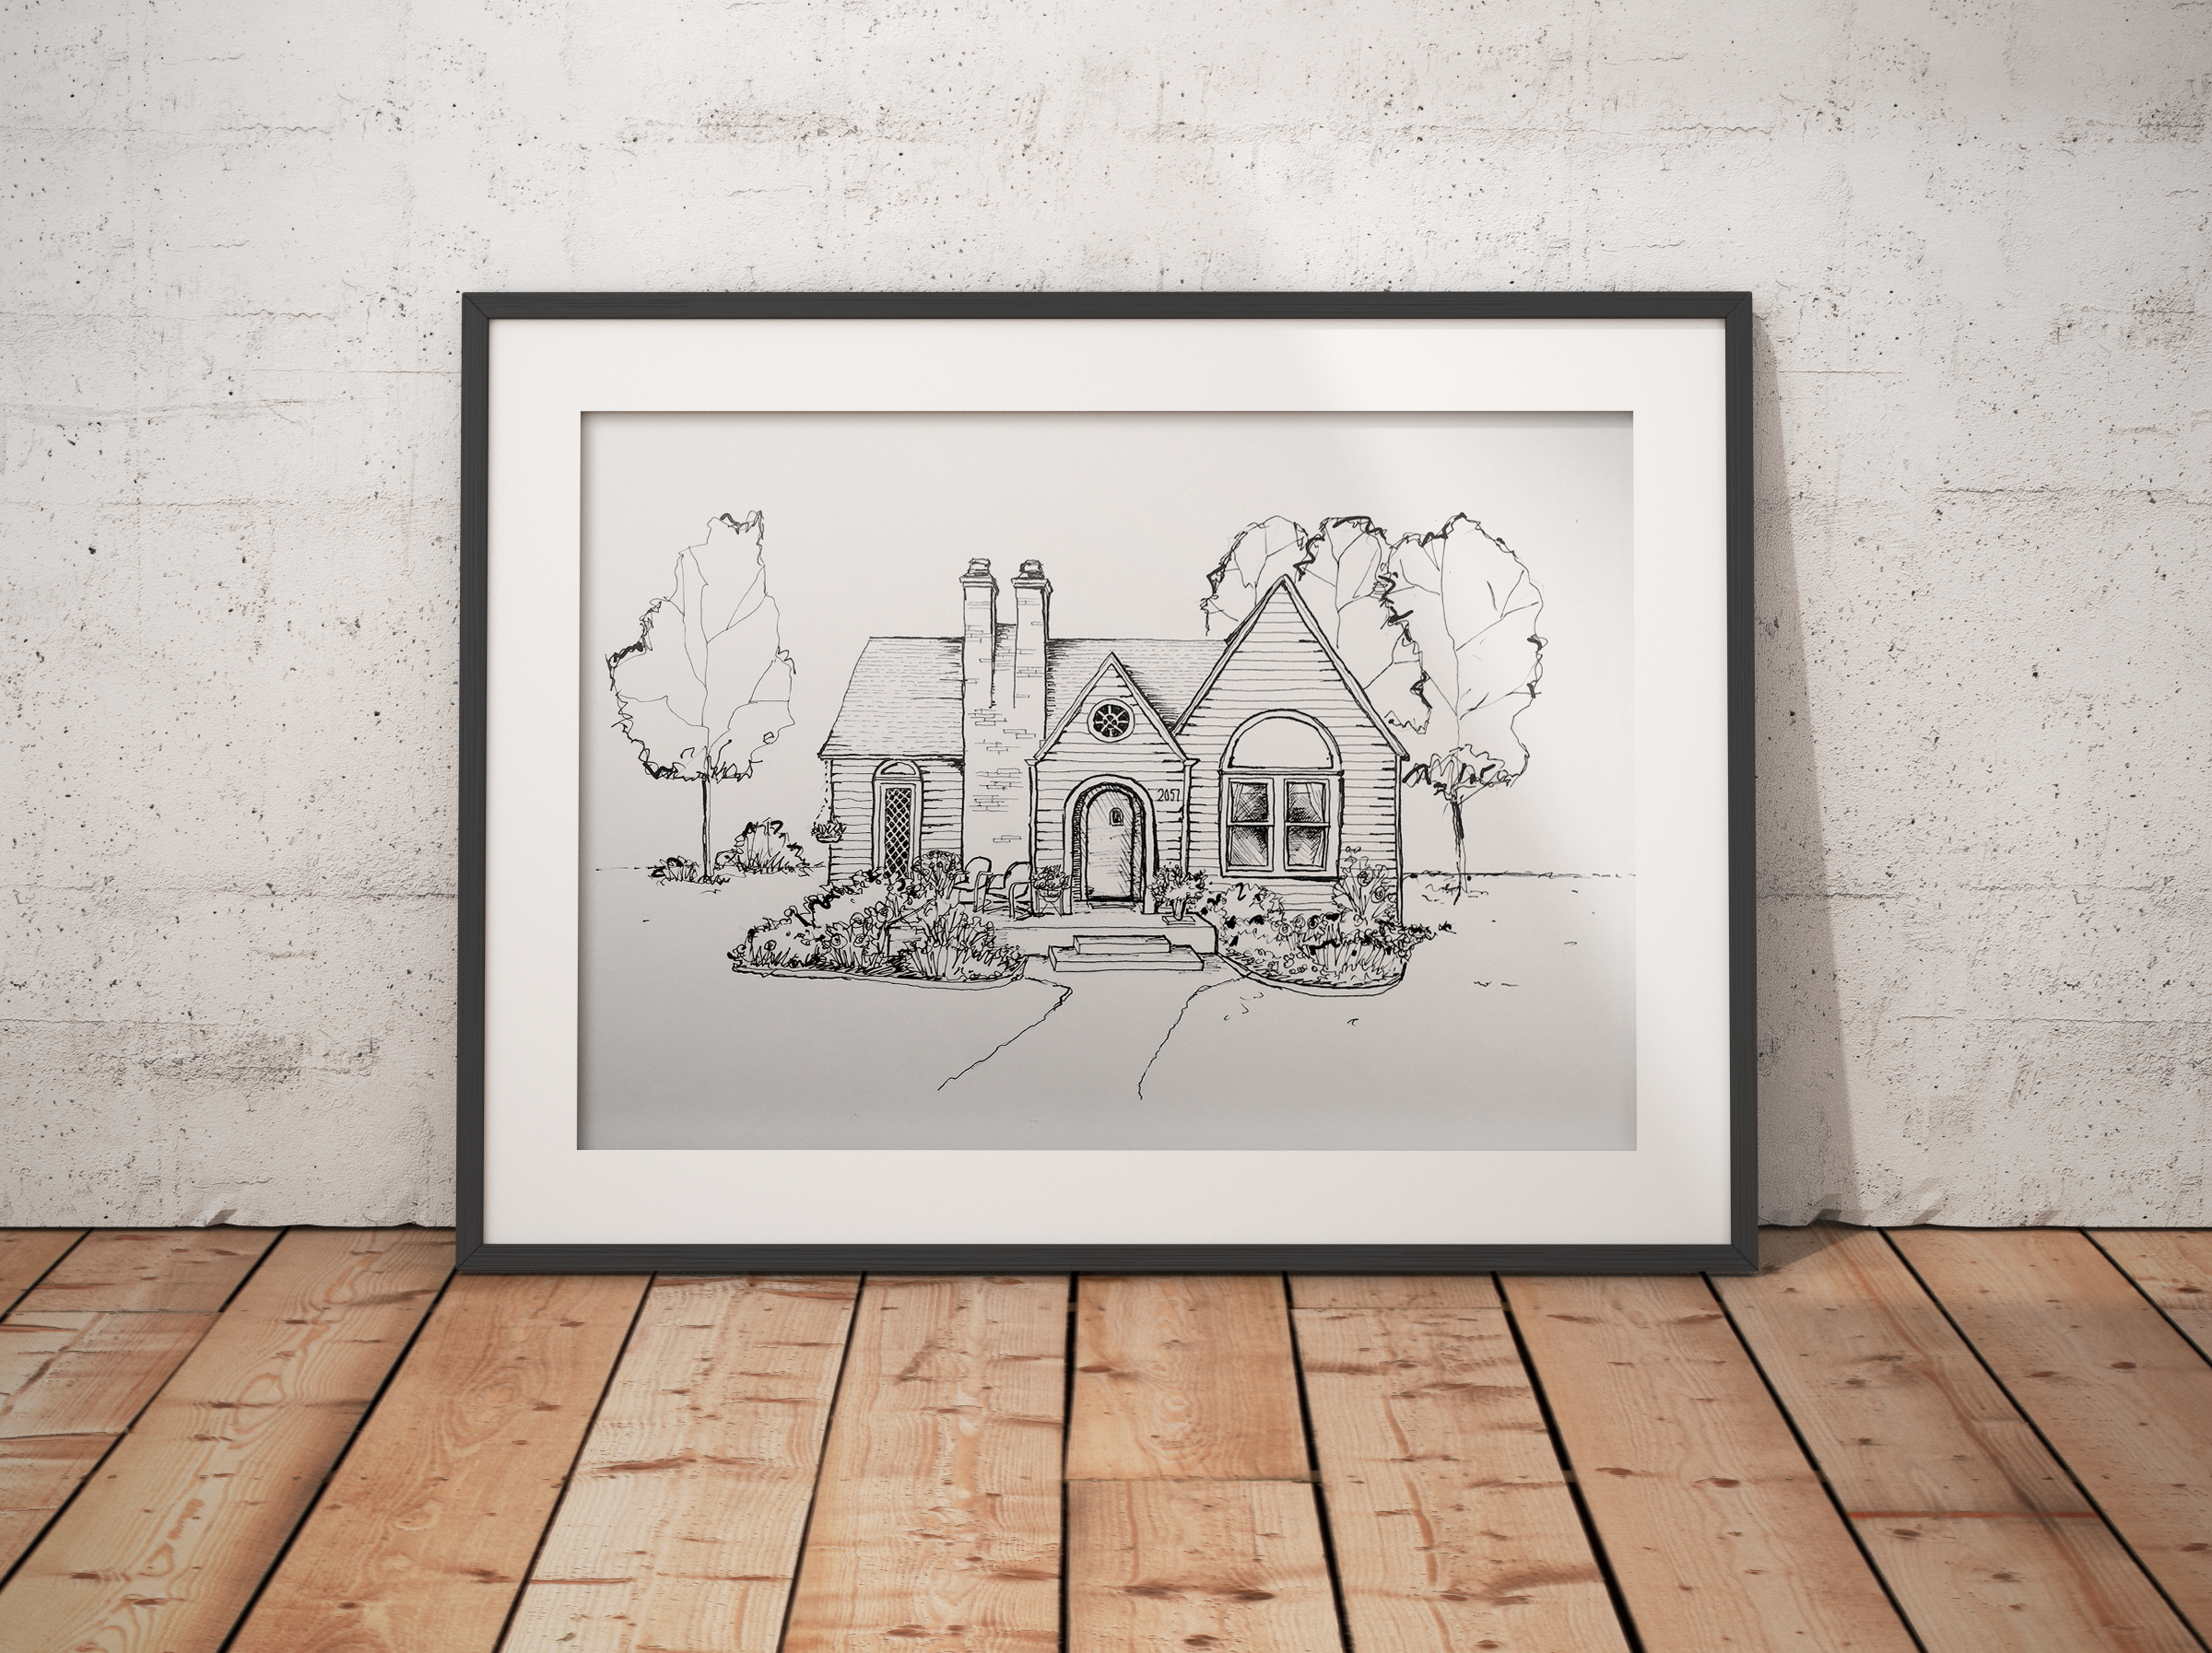 """Shown above: An example of large format 16"""" x 20"""" black and white home illustration, matted and ready for hanging! Contact me for more information about sizing and color options for your own custom artwork."""